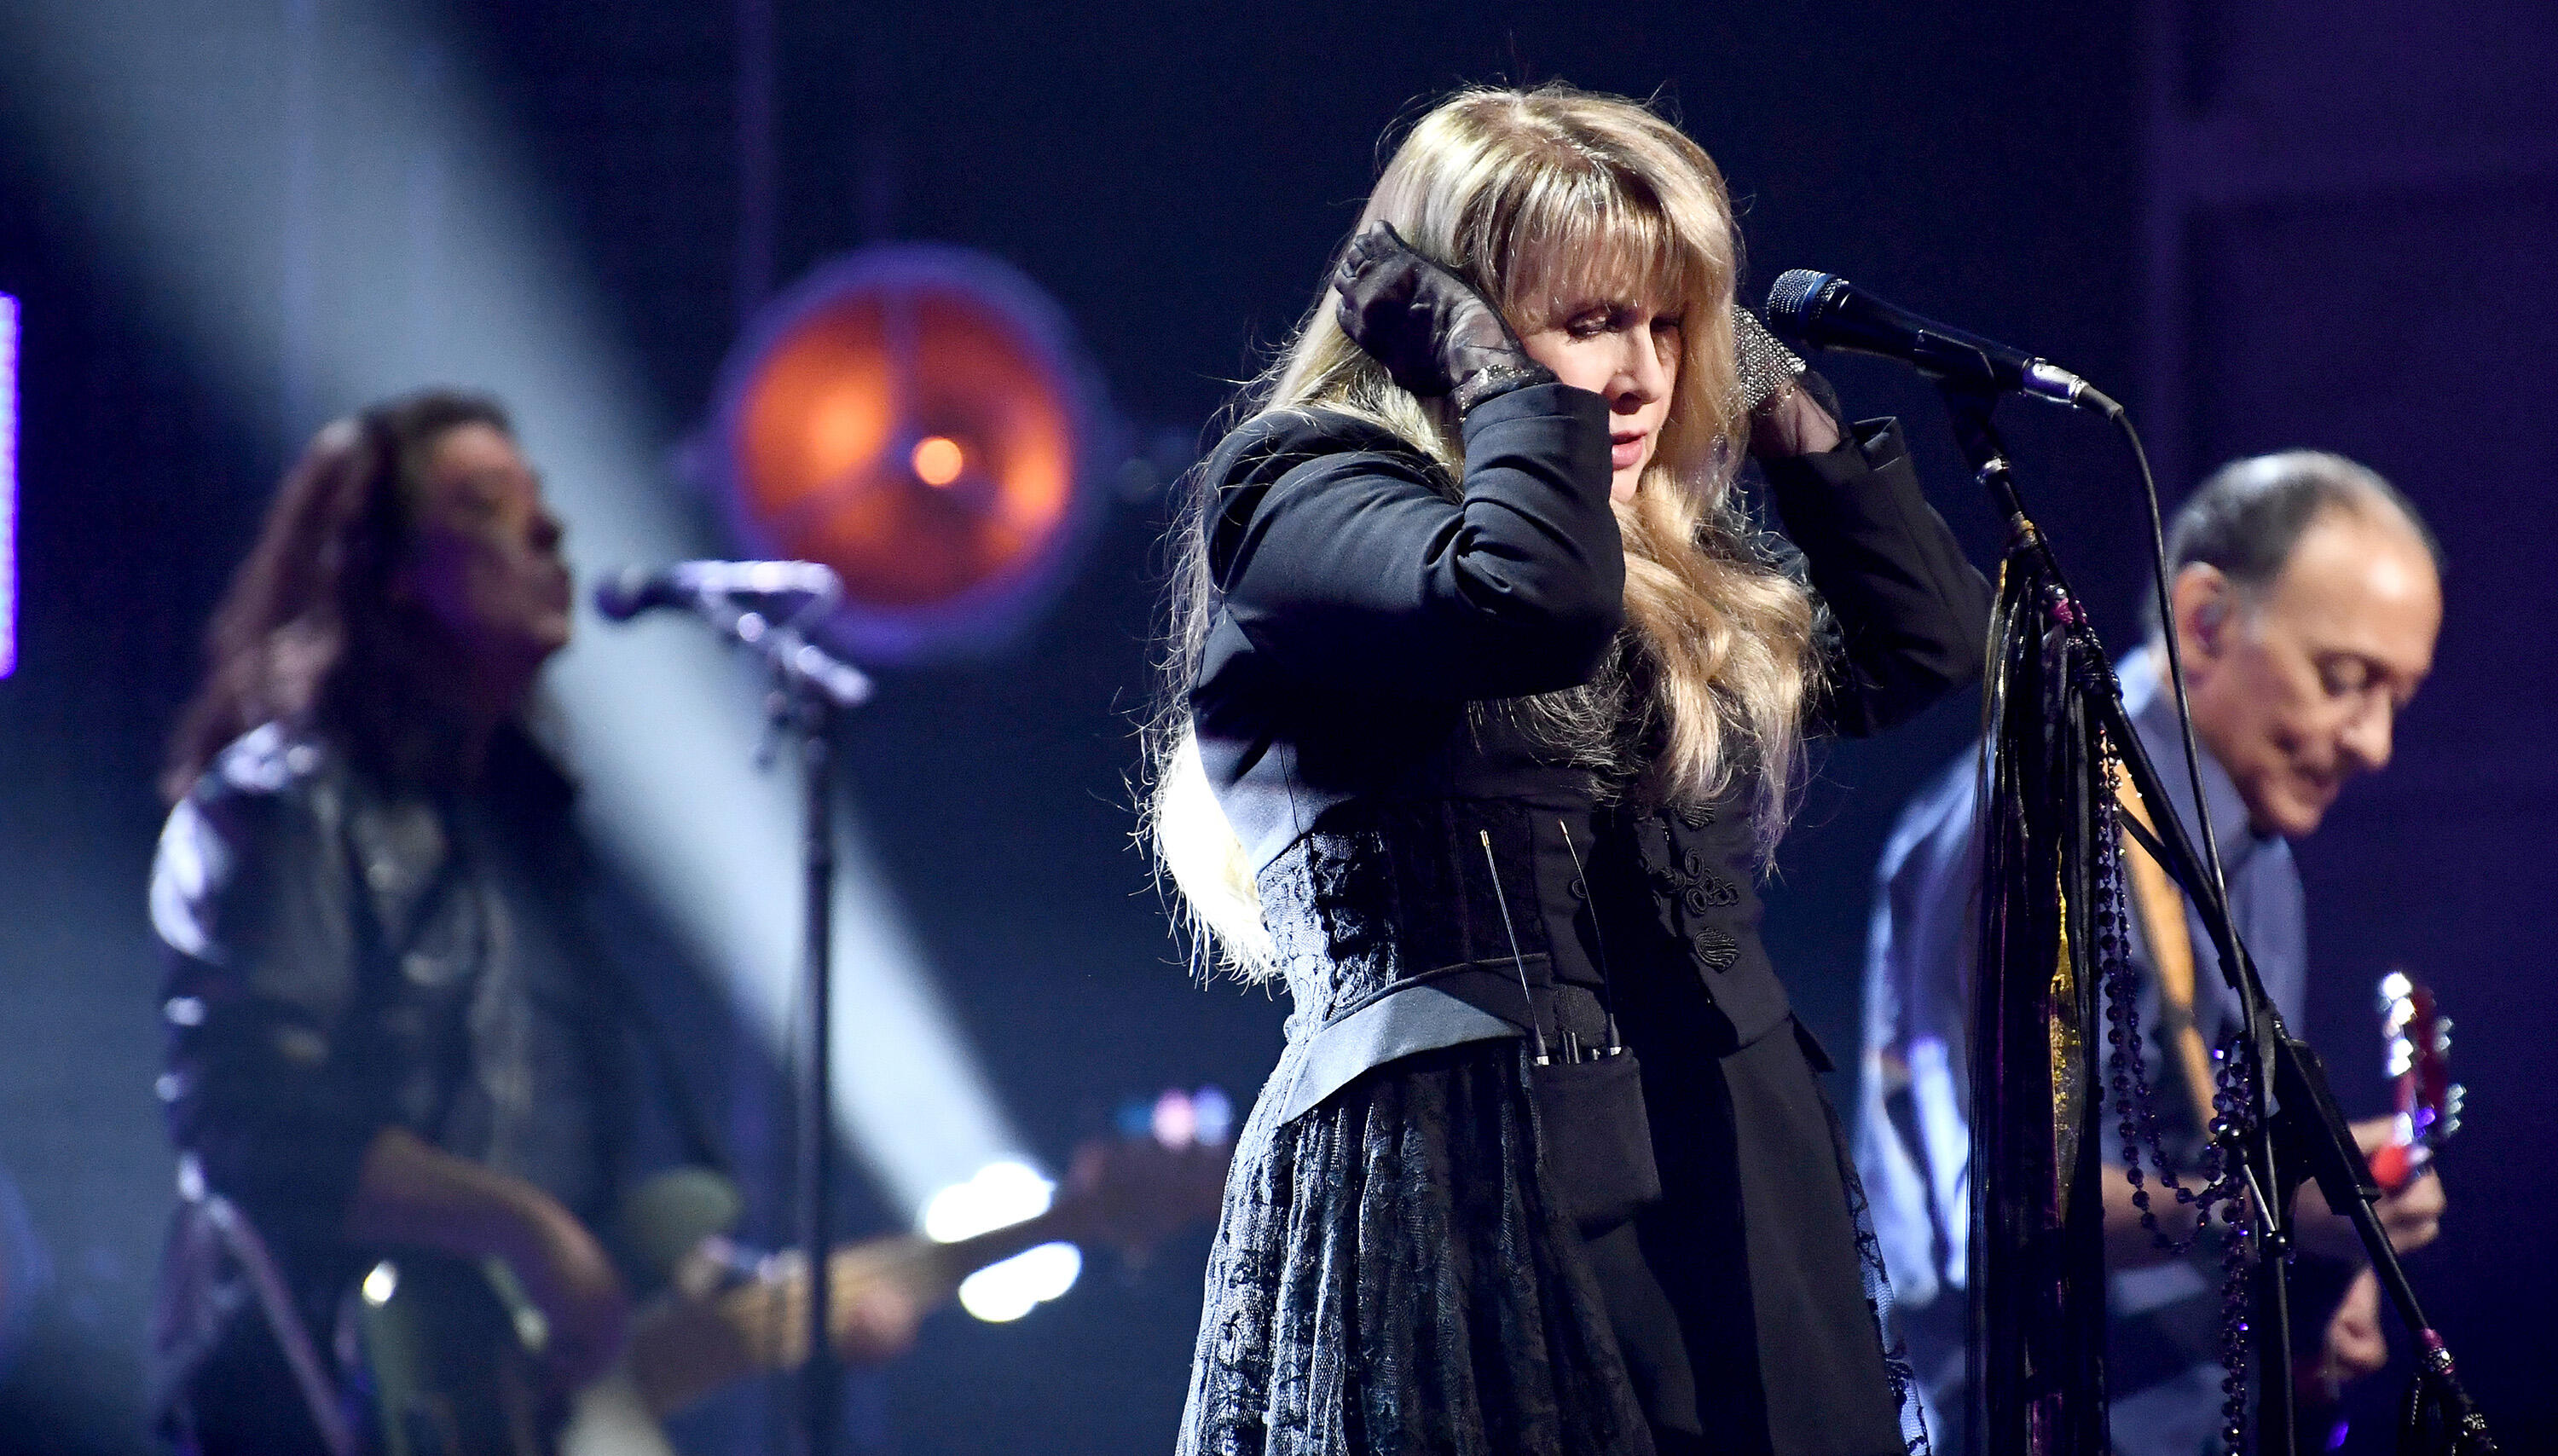 Stevie Nicks Says 'Compromised Lungs' Put Her At High Risk For COVID-19